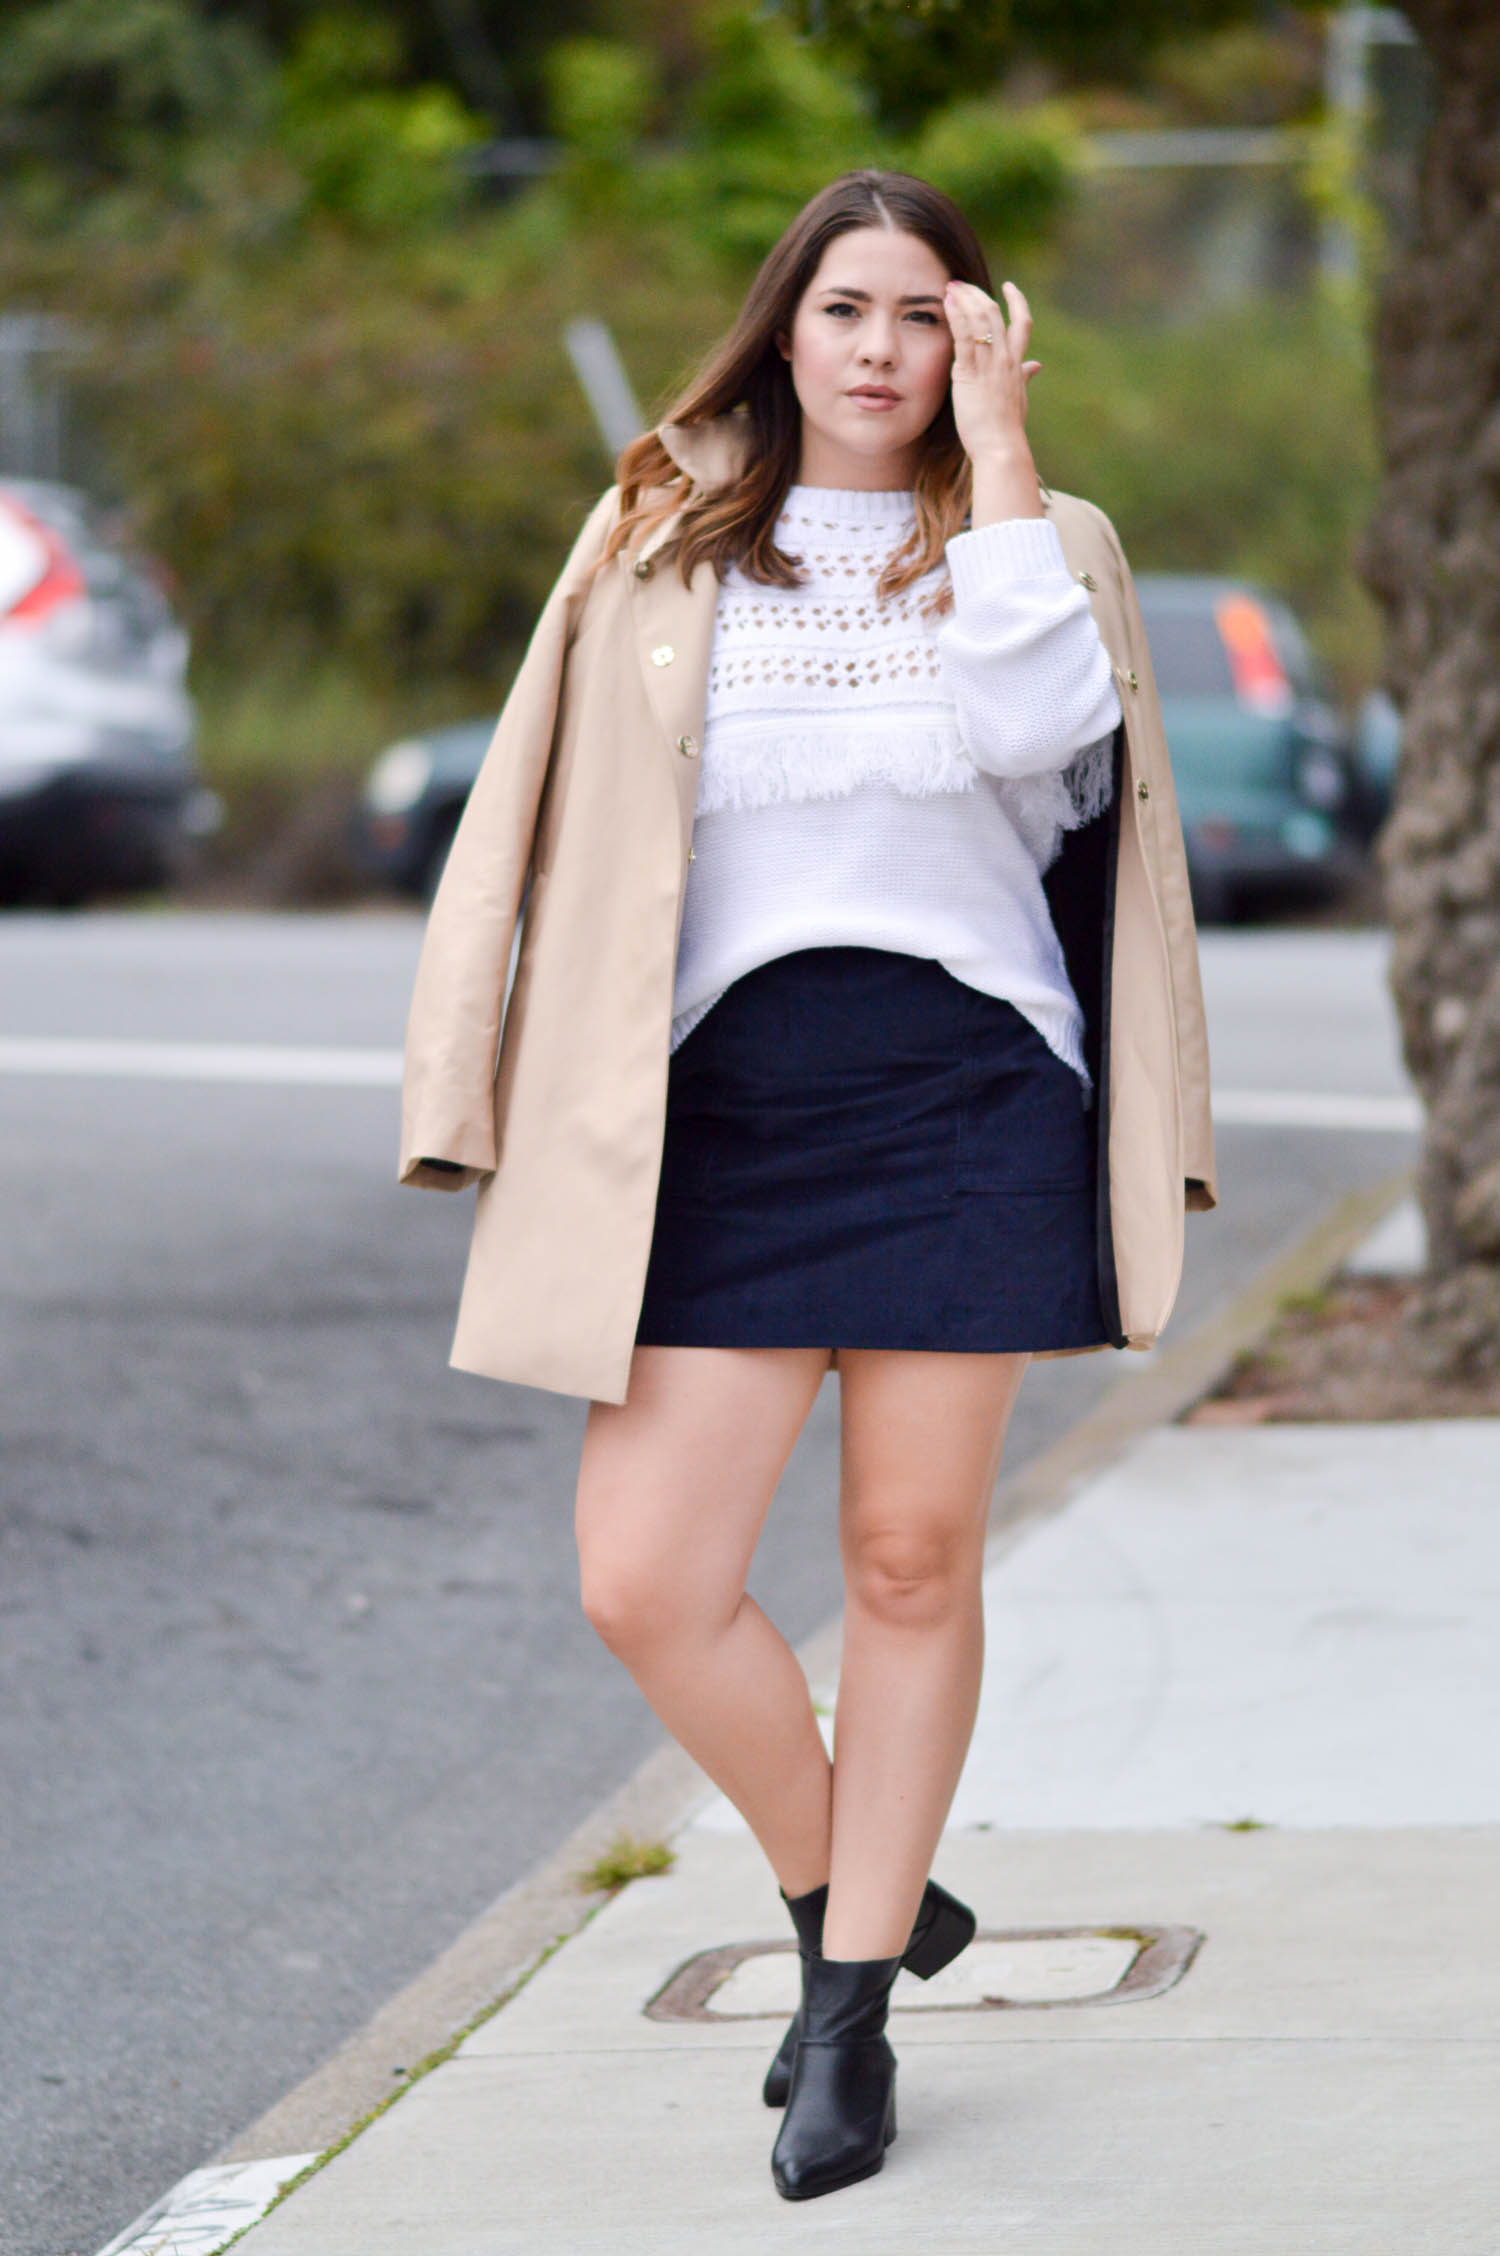 Fall Preview, Fringe Sweater and Velvet Skirt via. www.birdieshoots.com